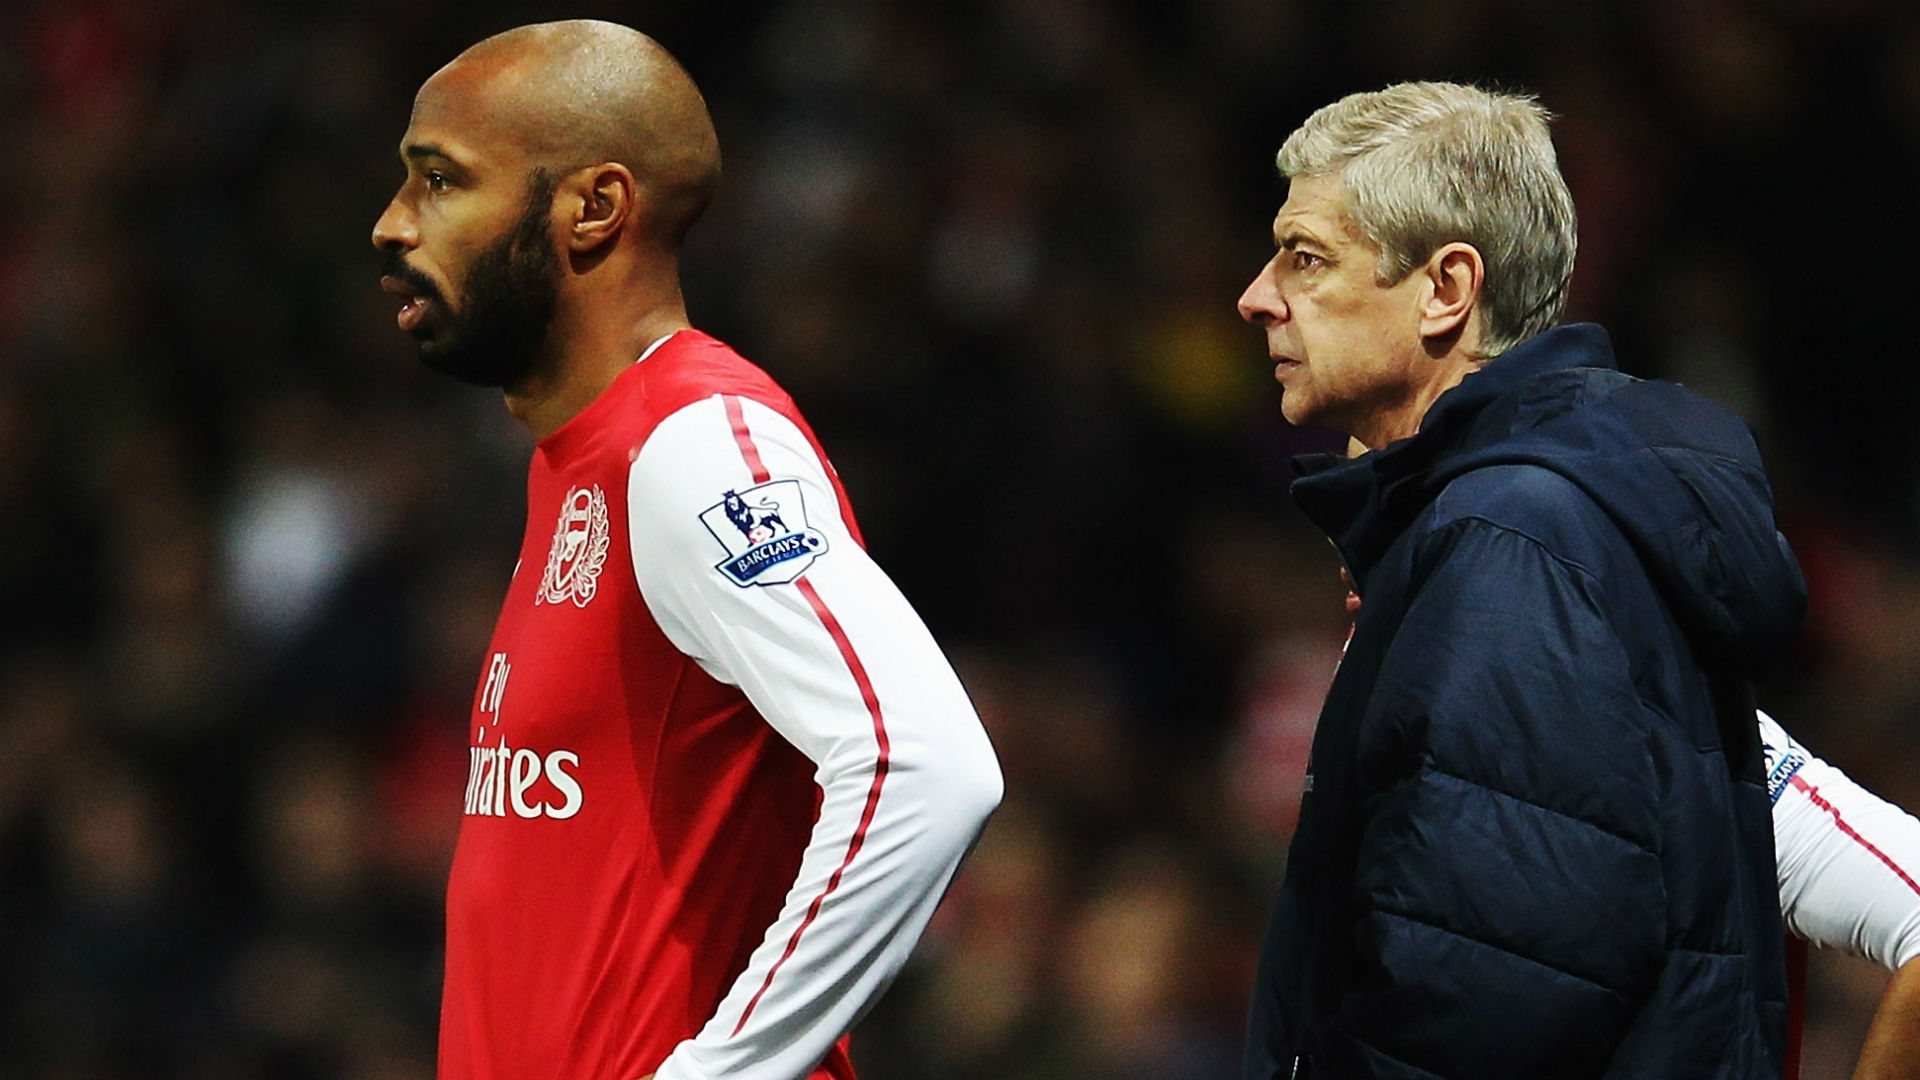 Wenger and Thierry henry